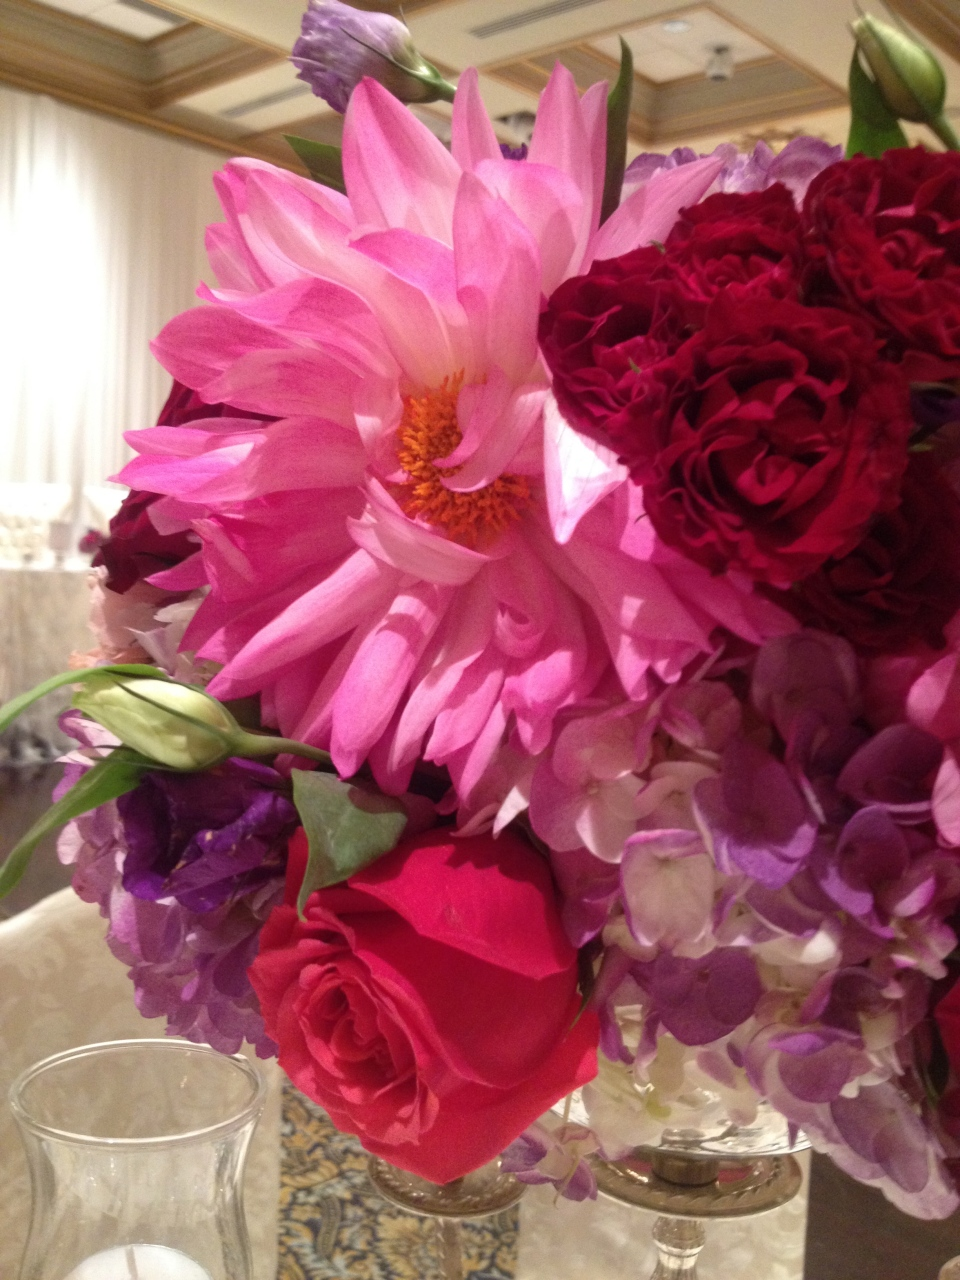 Centerpiece detail - Dahlia's, Roses and Lisianthus in Berry Tones